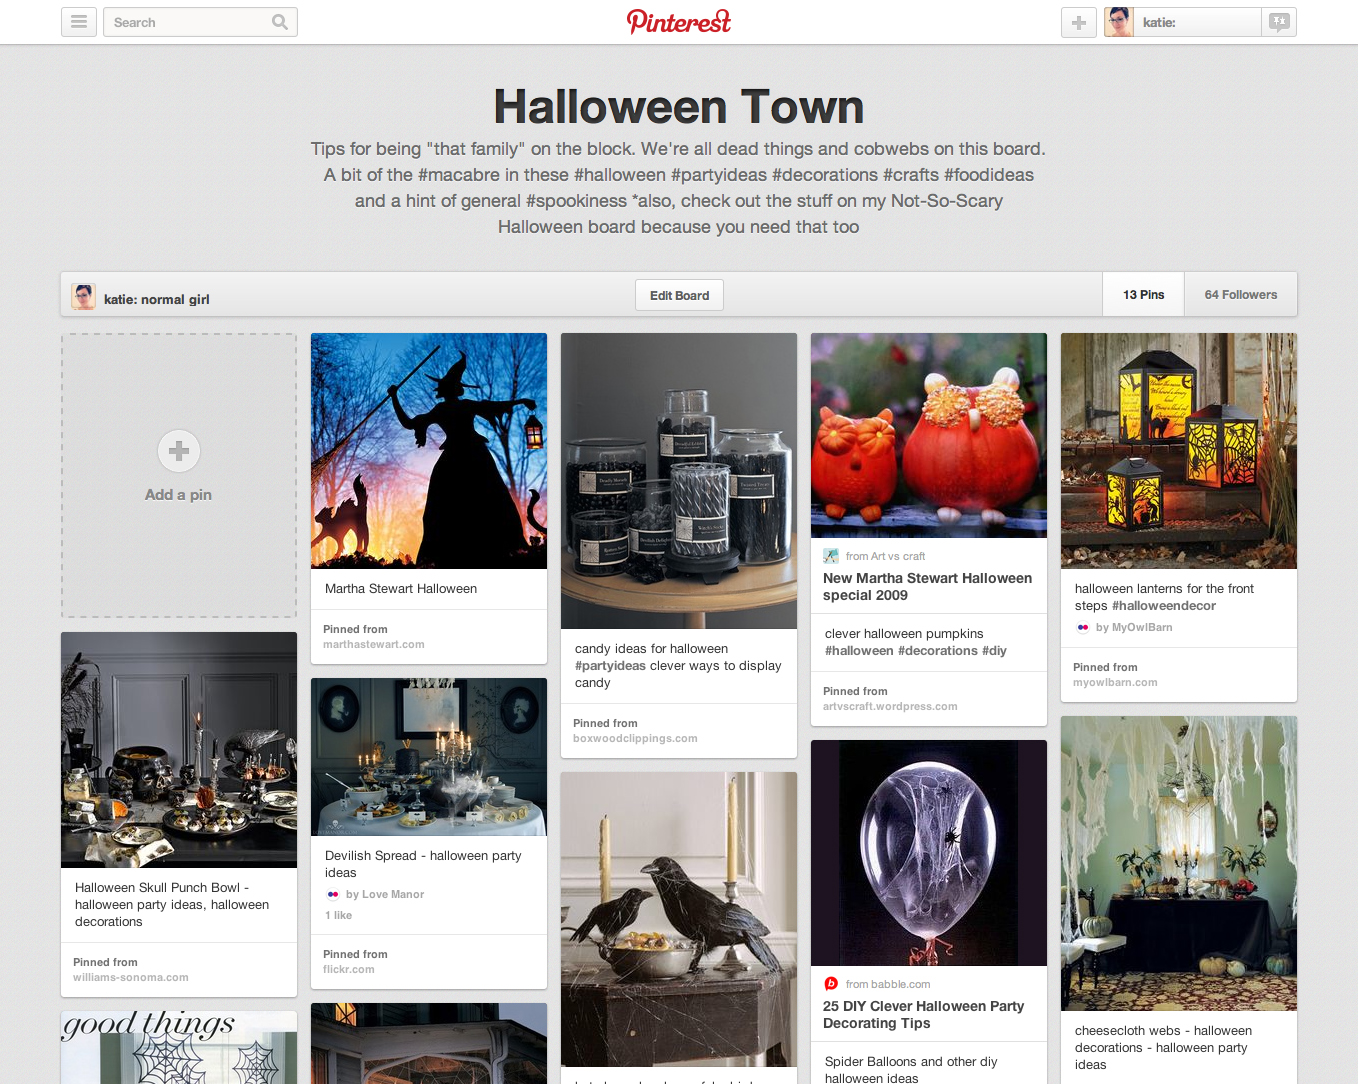 Halloween Town pinterest board from katienormalgirl.com